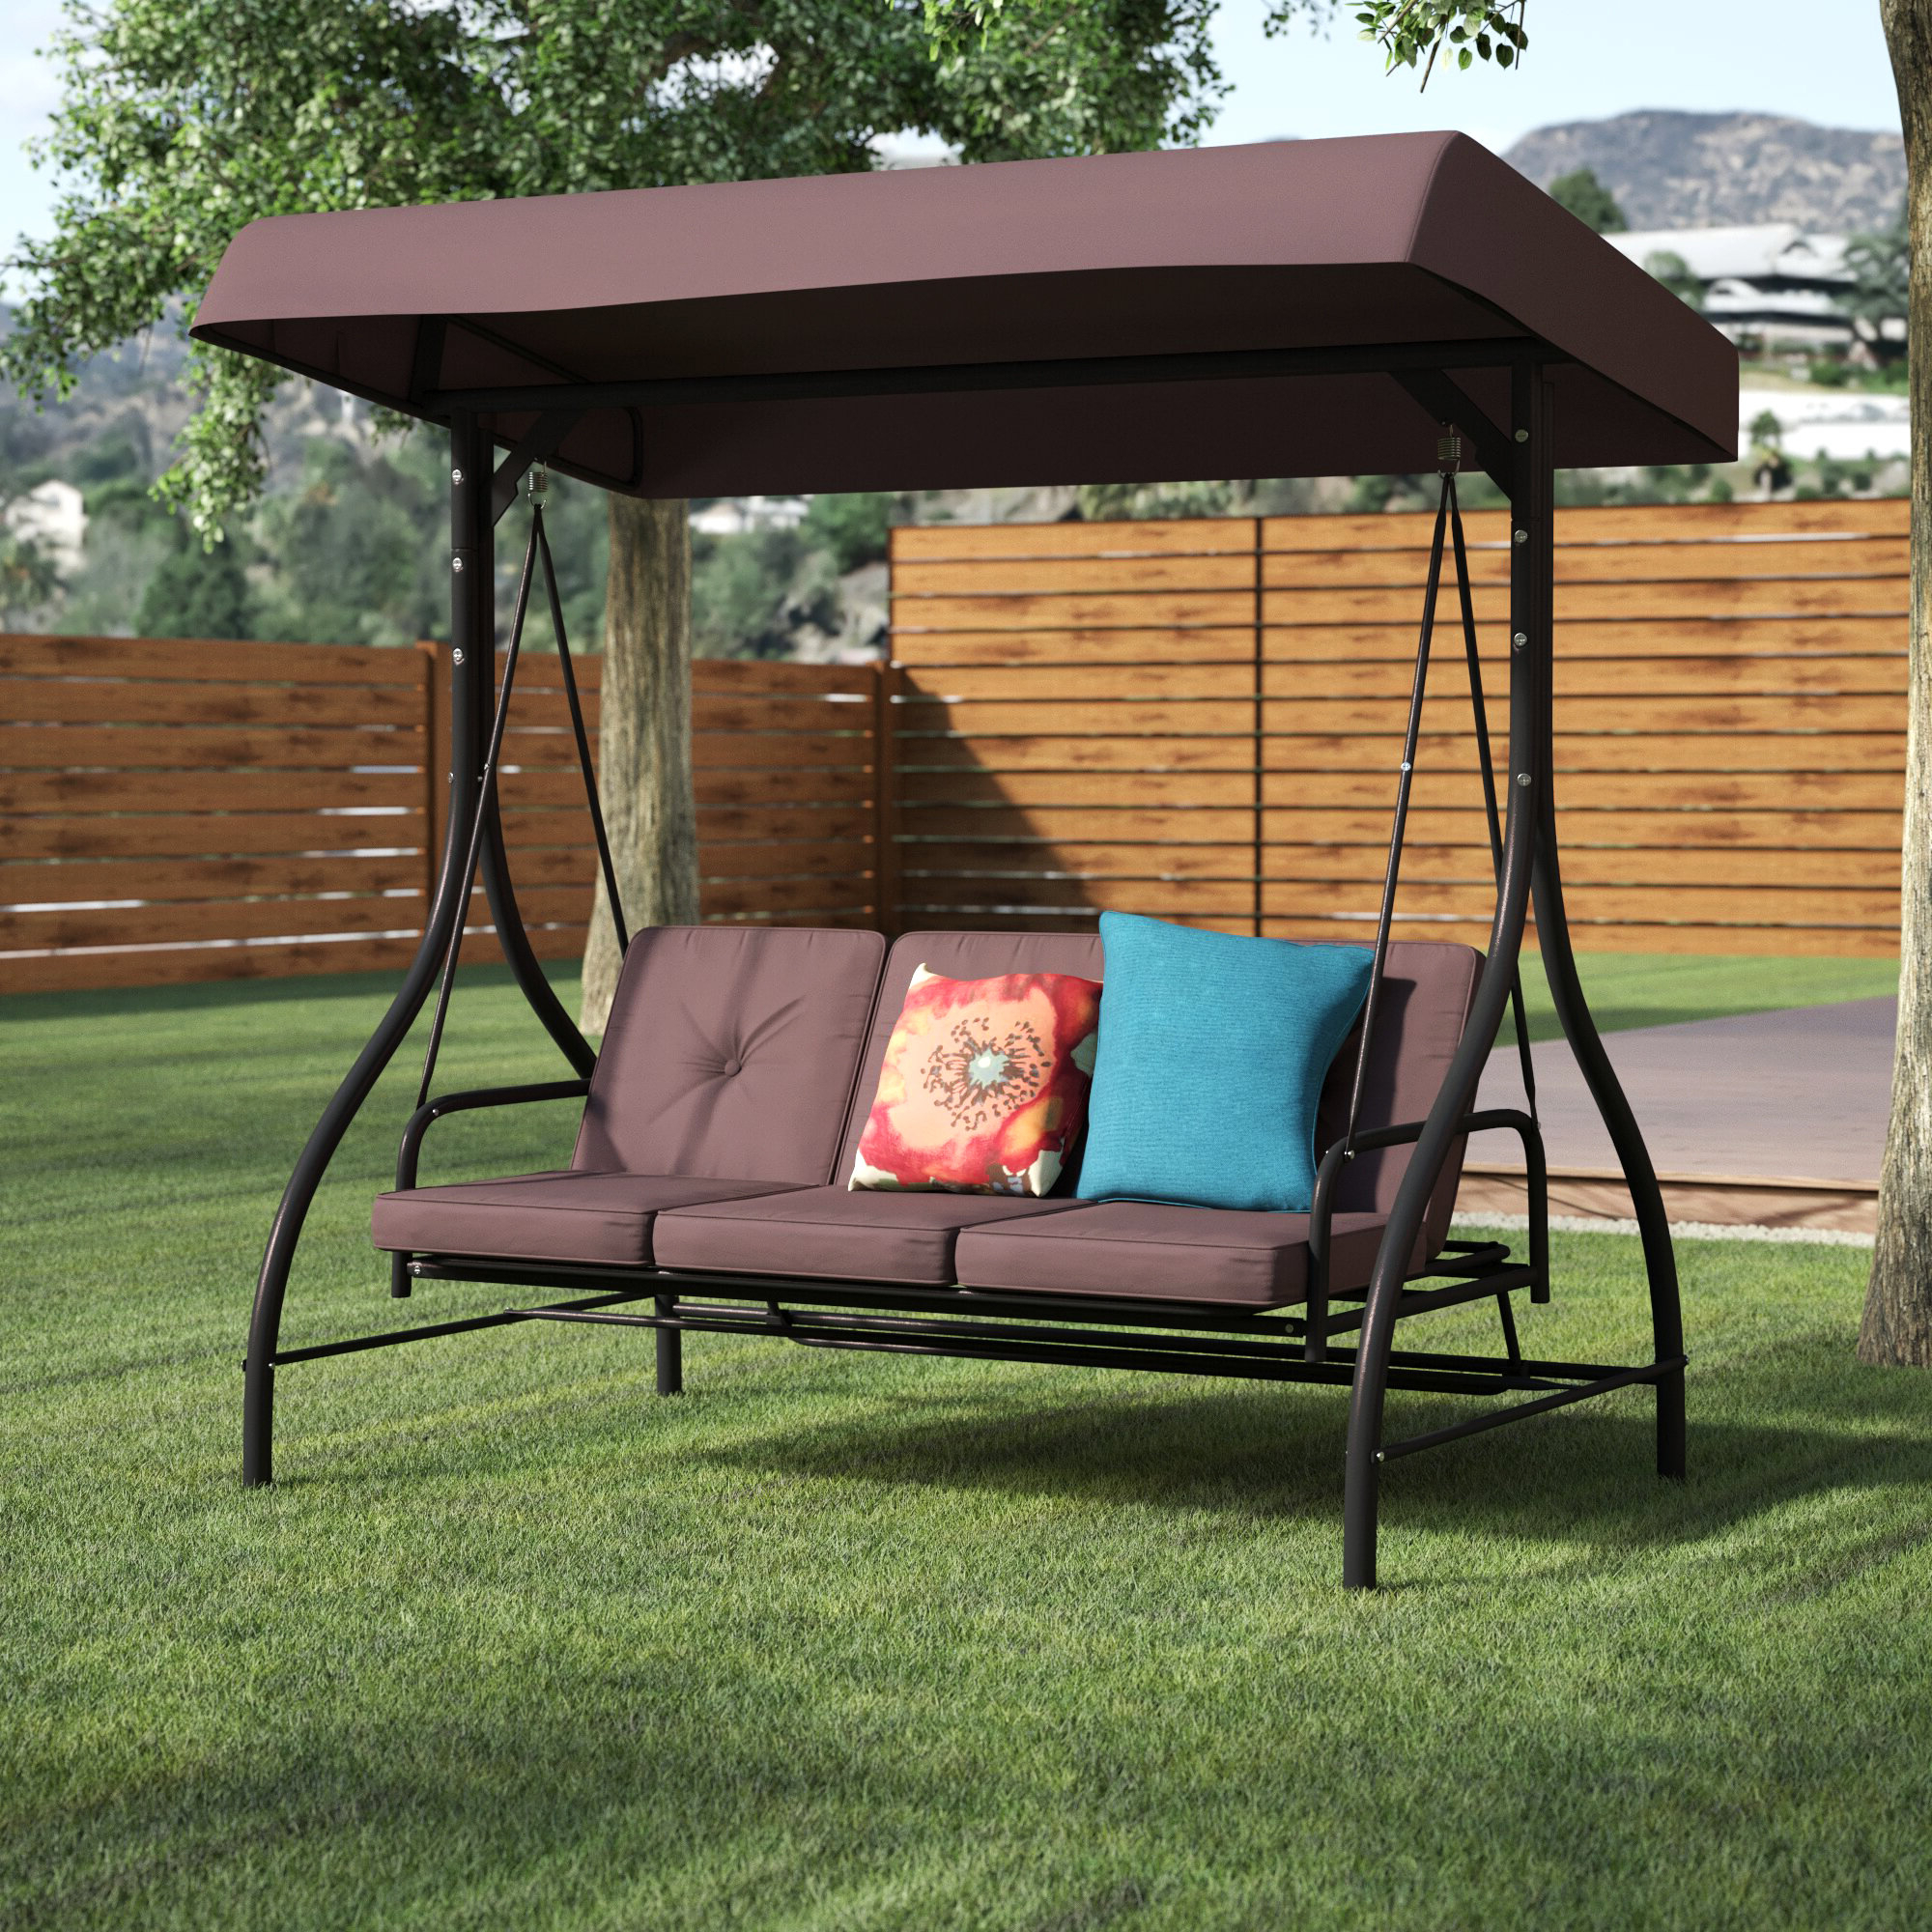 Favorite Canopy Patio Porch Swing With Stand In Lasalle Canopy Patio Porch Swing With Stand (Gallery 3 of 30)